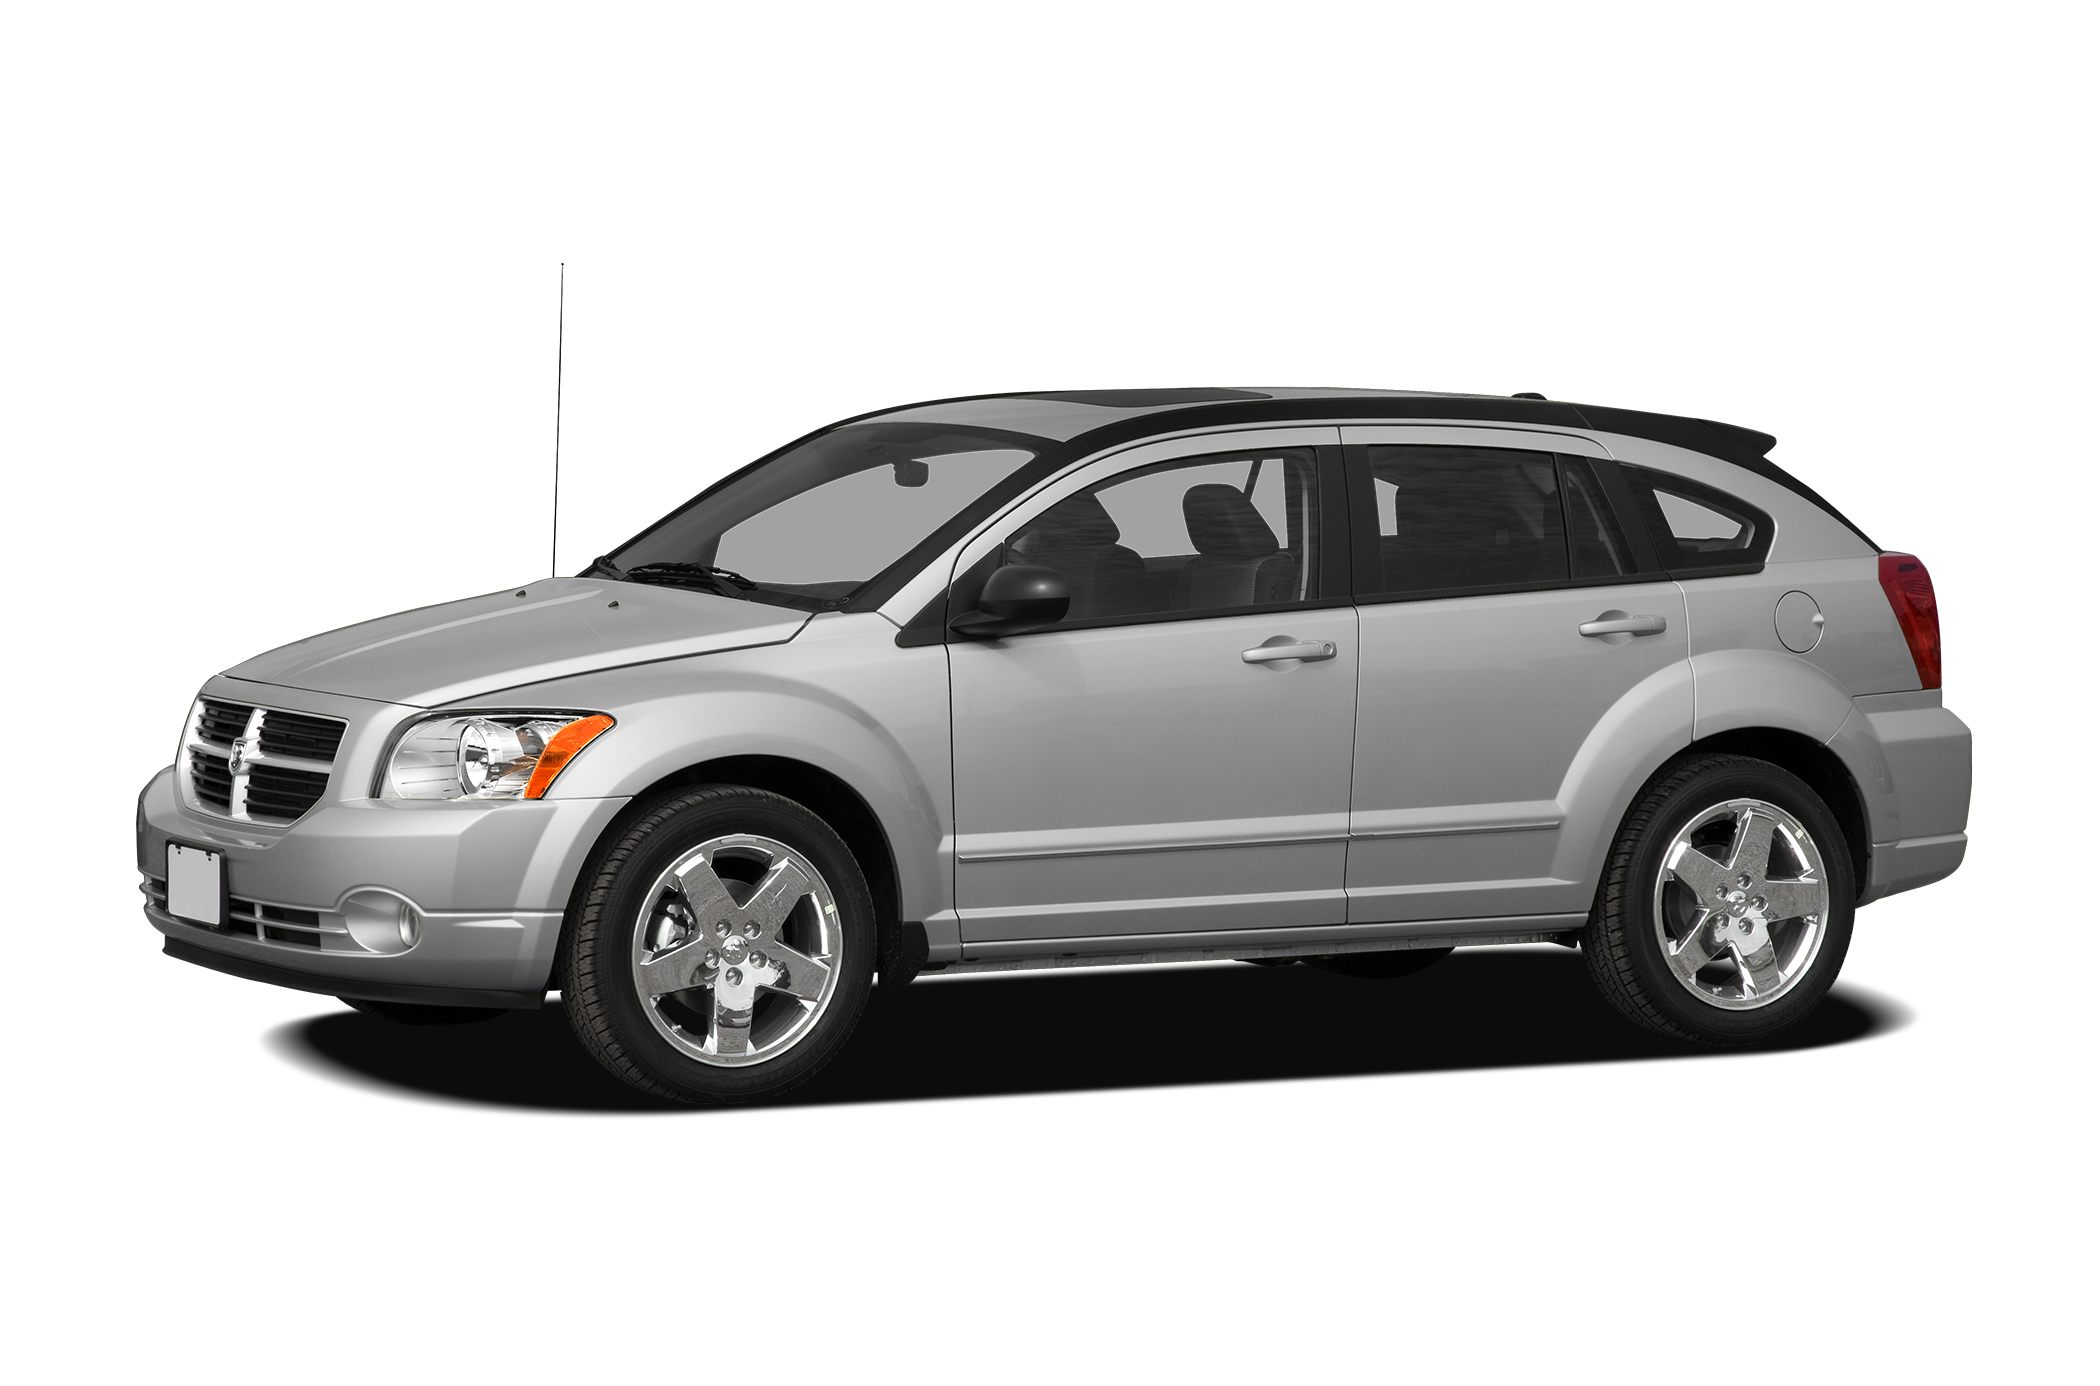 2009 Dodge Caliber SXT Hatchback for sale in Indianapolis for $6,500 with 109,332 miles.